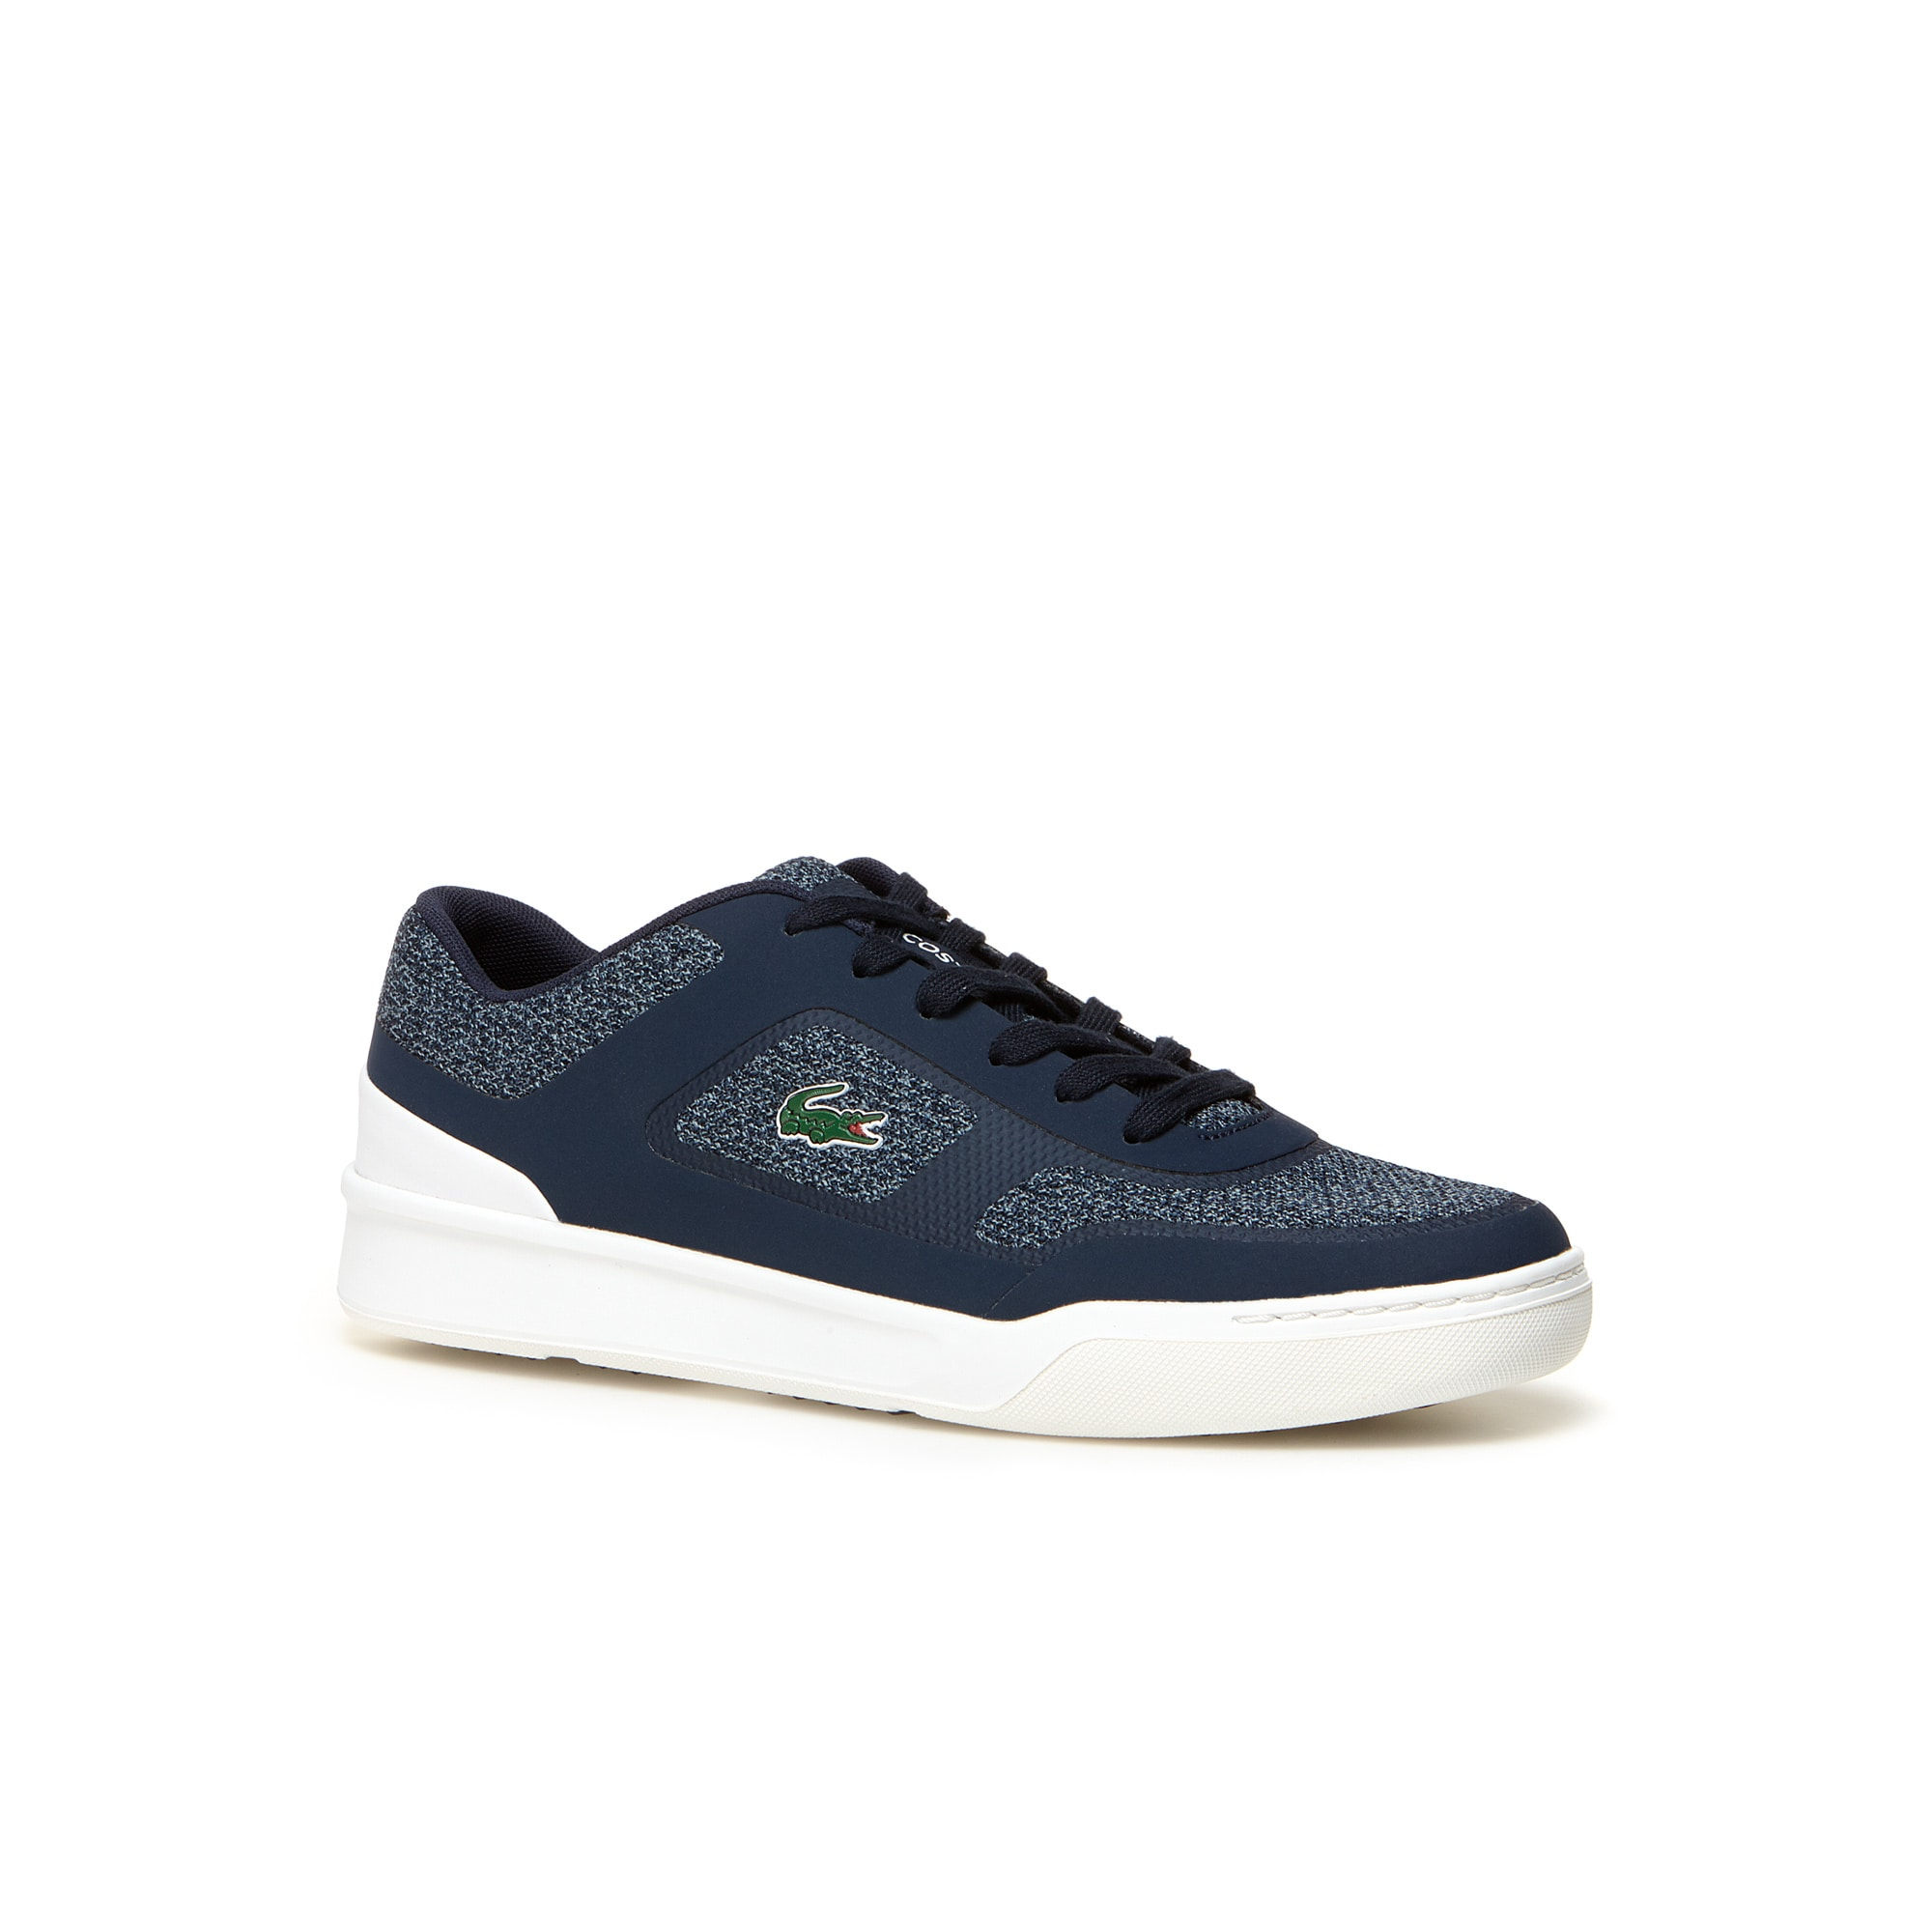 Men's Explorateur Sport Marl Piqué Sneakers